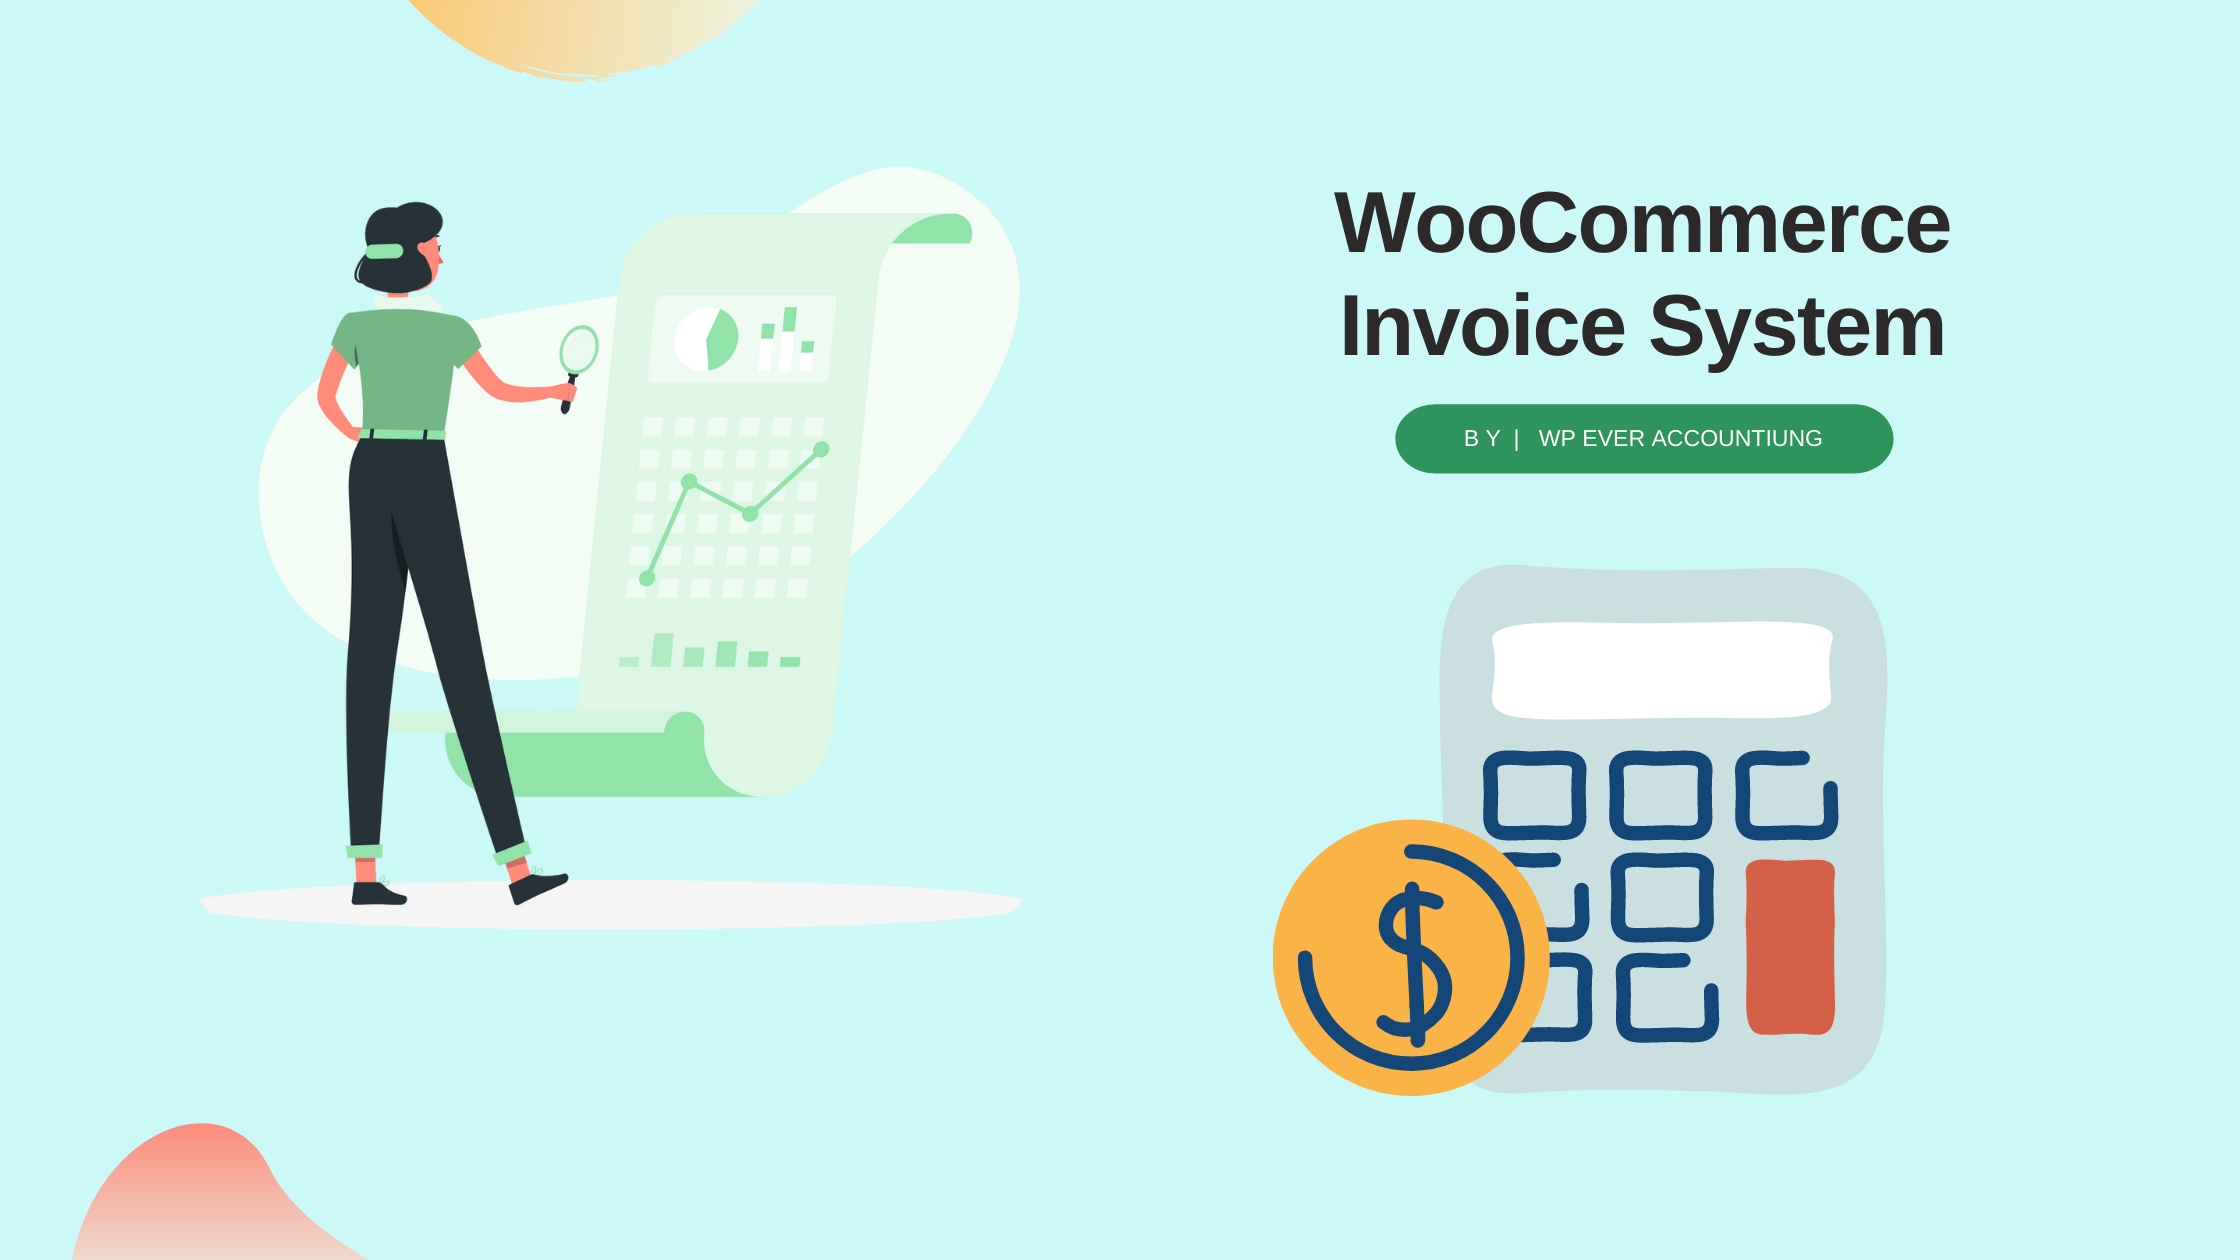 woocommerce invoice system-Generate Invoices with WordPress Plugin